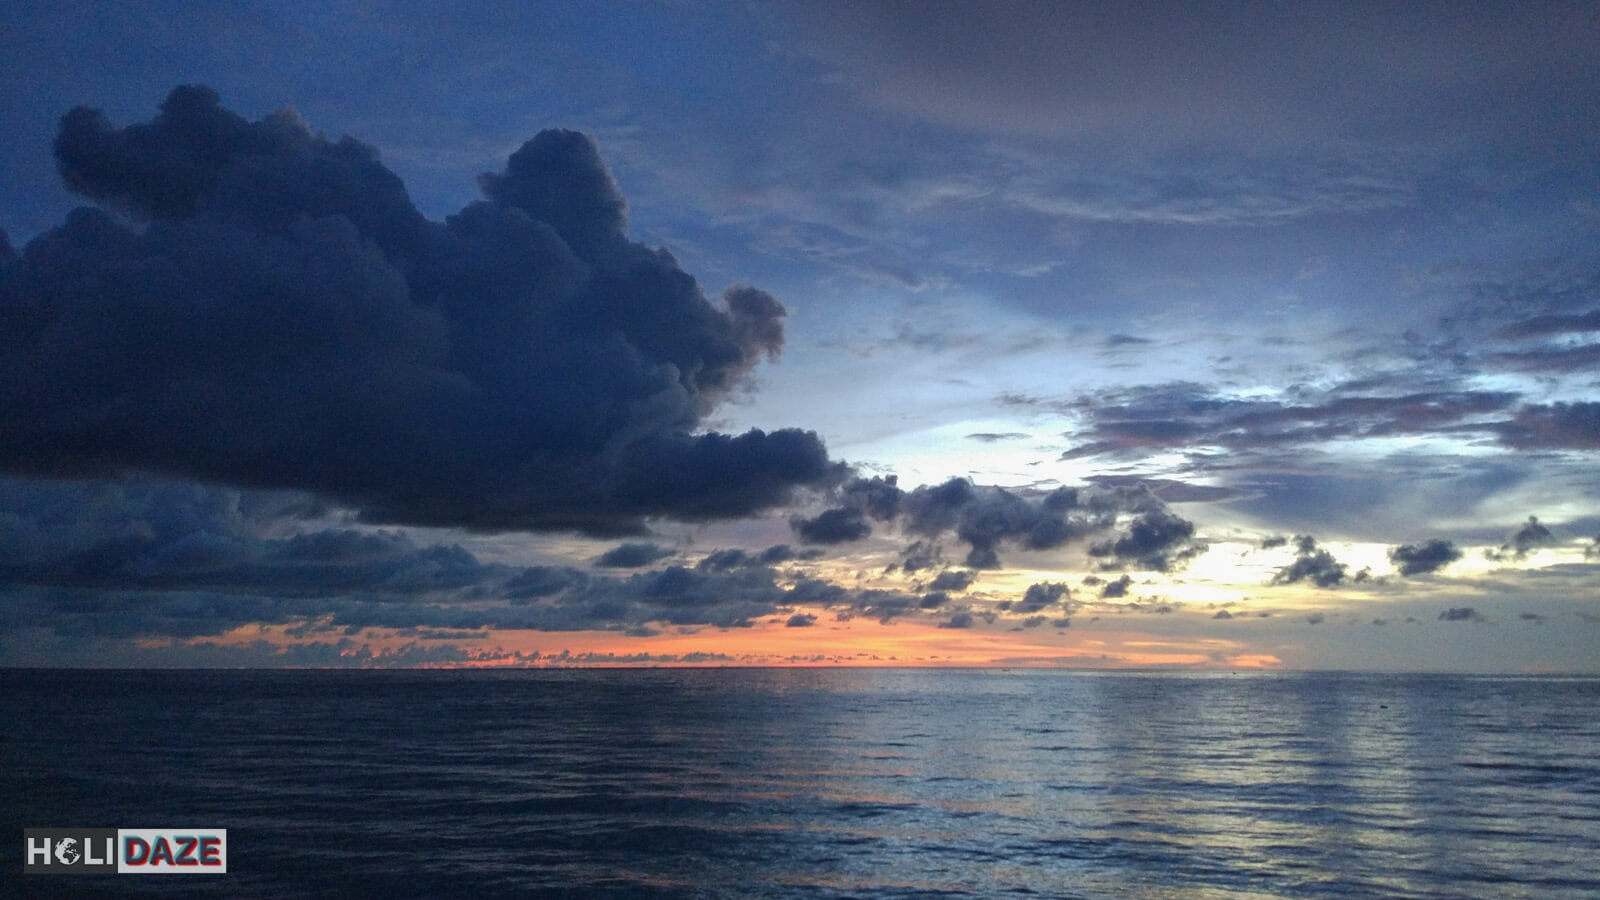 The Tip of Borneo is one of the best places to view the colorful Sabah sunset